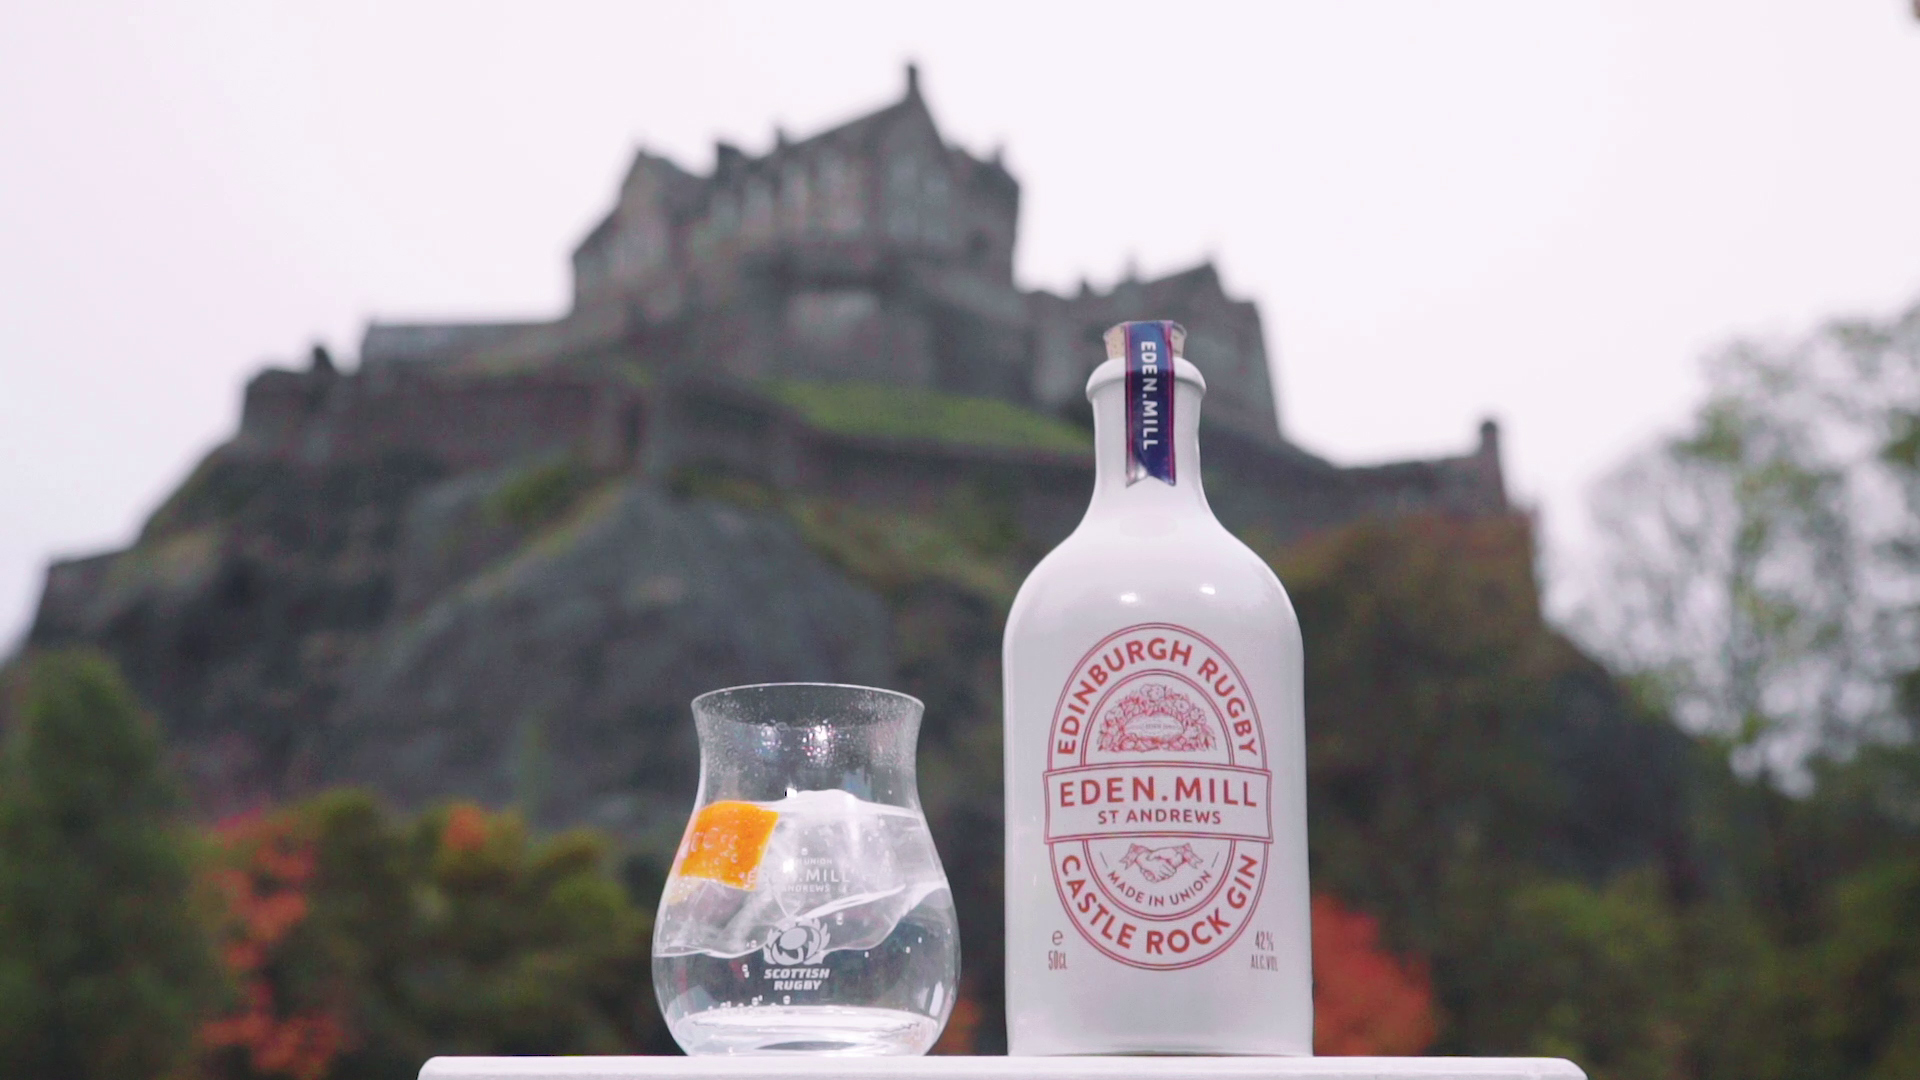 Edinburgh Rugby Gin | Eden Mill Distillery St Andrews